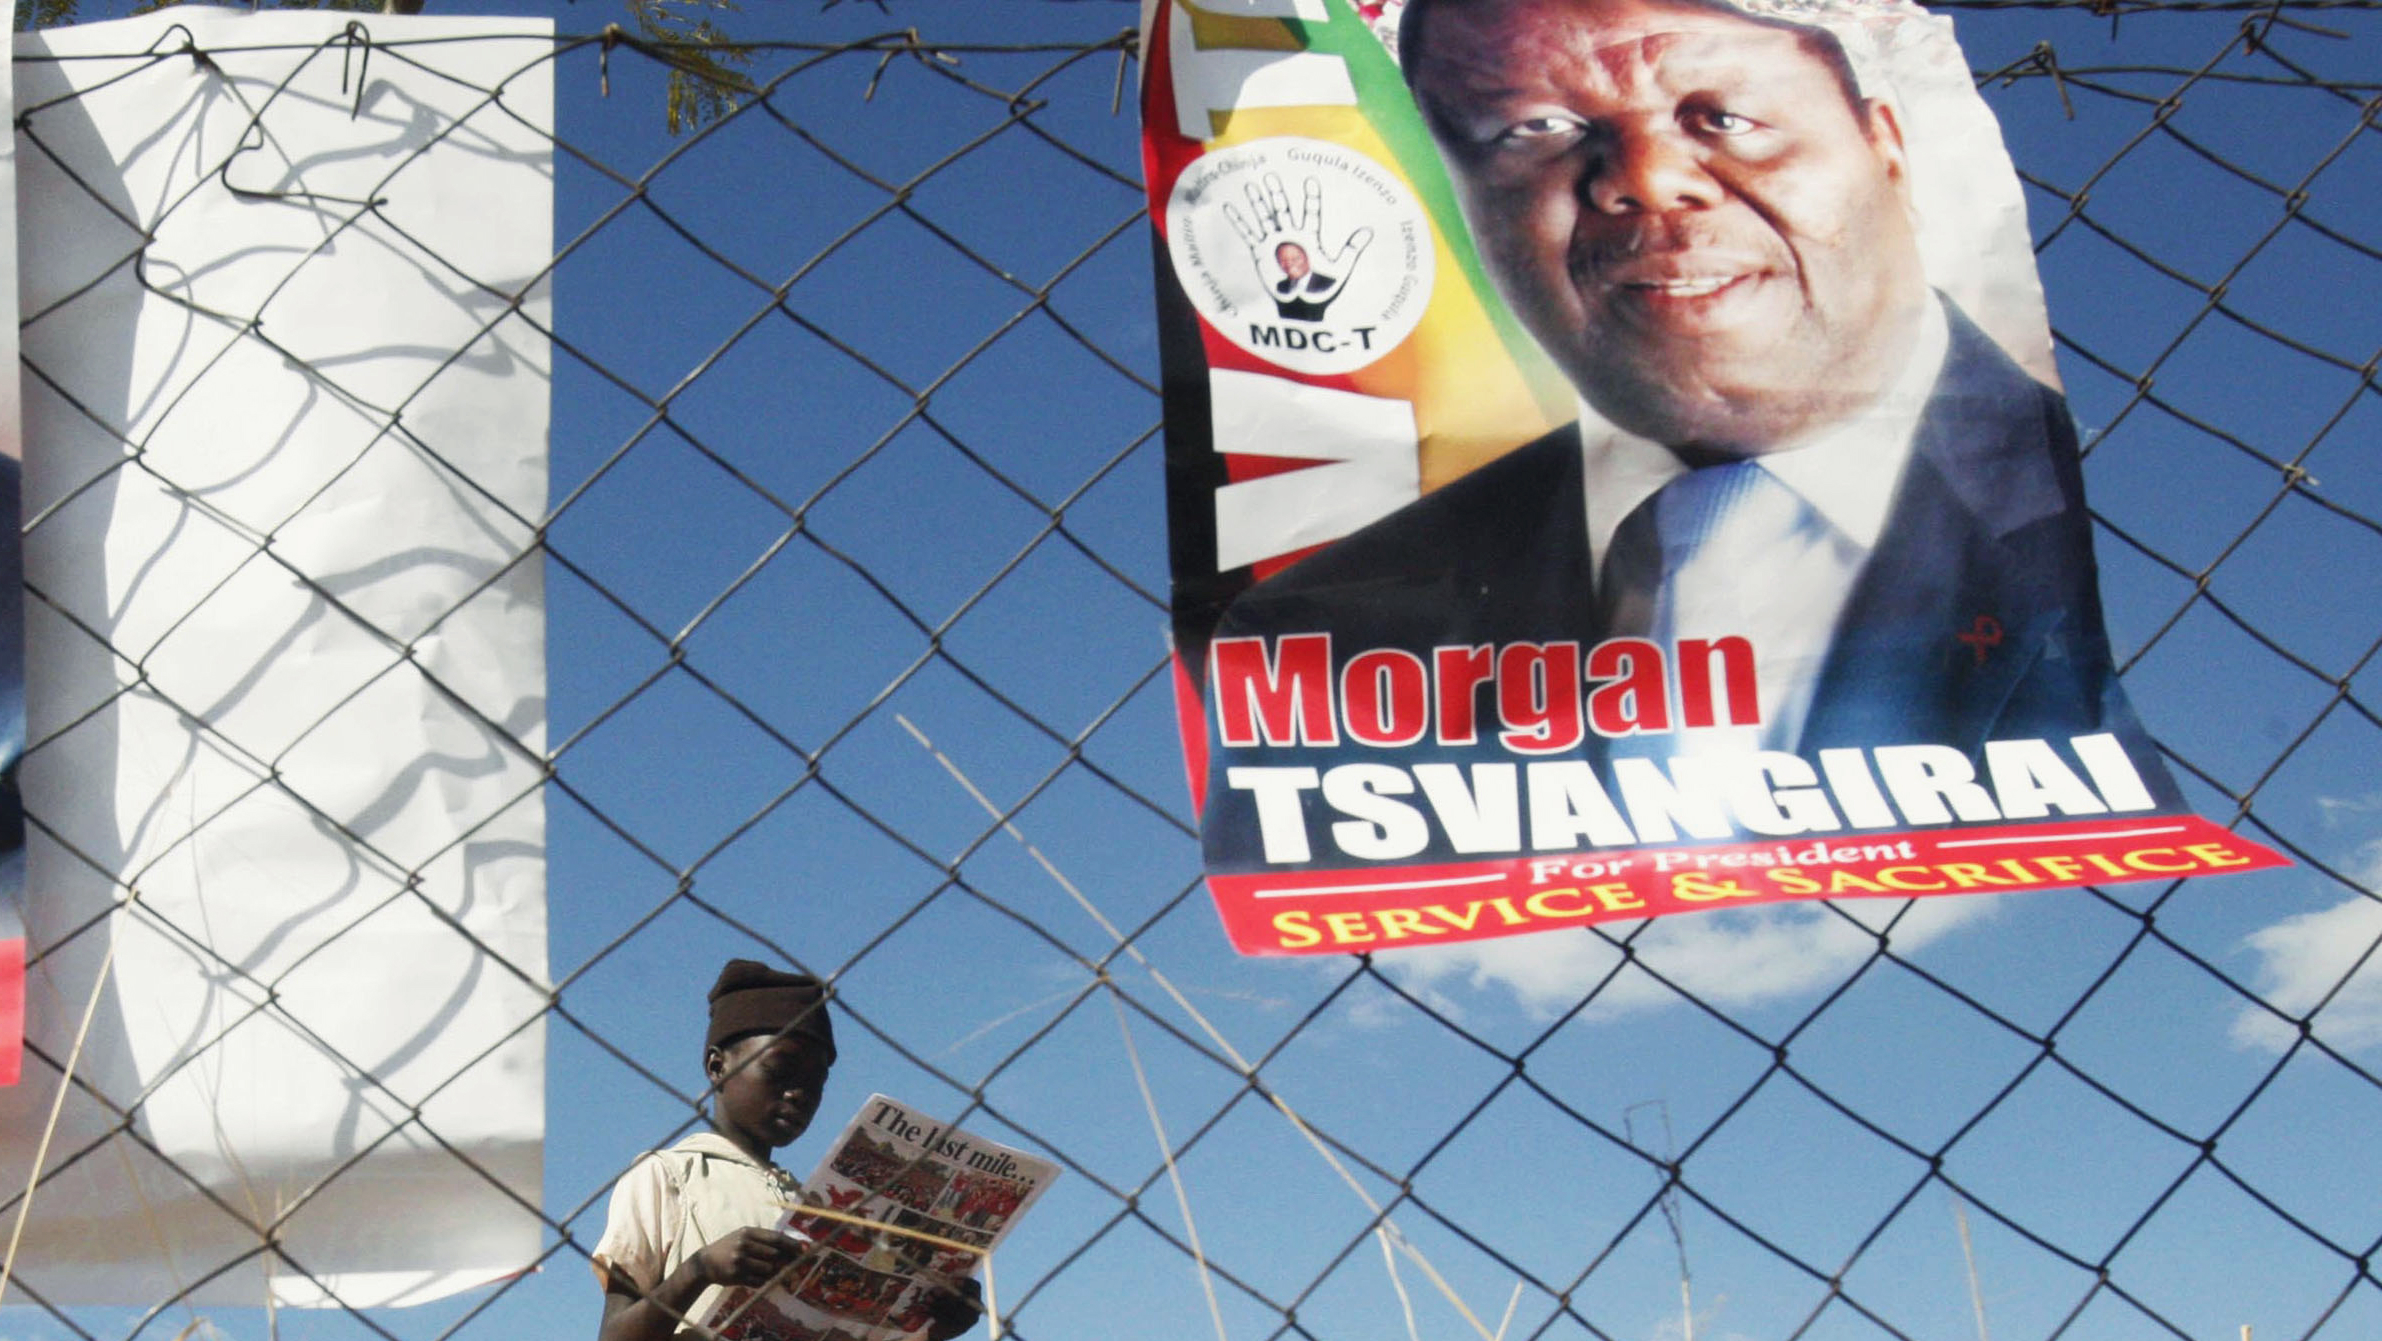 Opposition candidates in the Zimbabwe elections will be reverting to traditional means such as releasing pamphlets and posters.